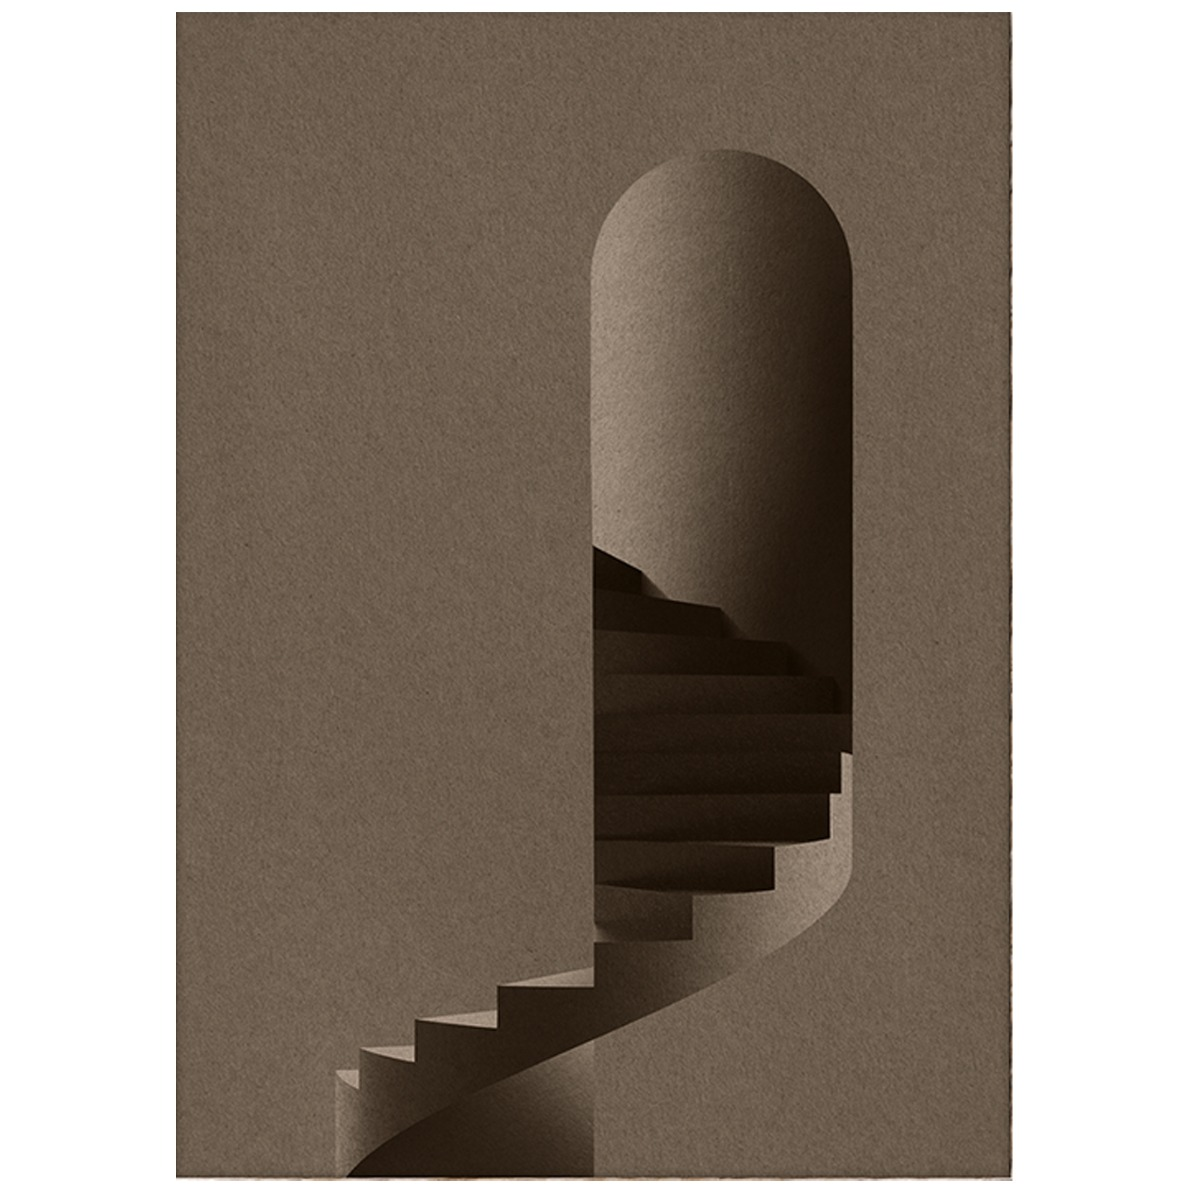 Designtorget Poster The Tower 50x70